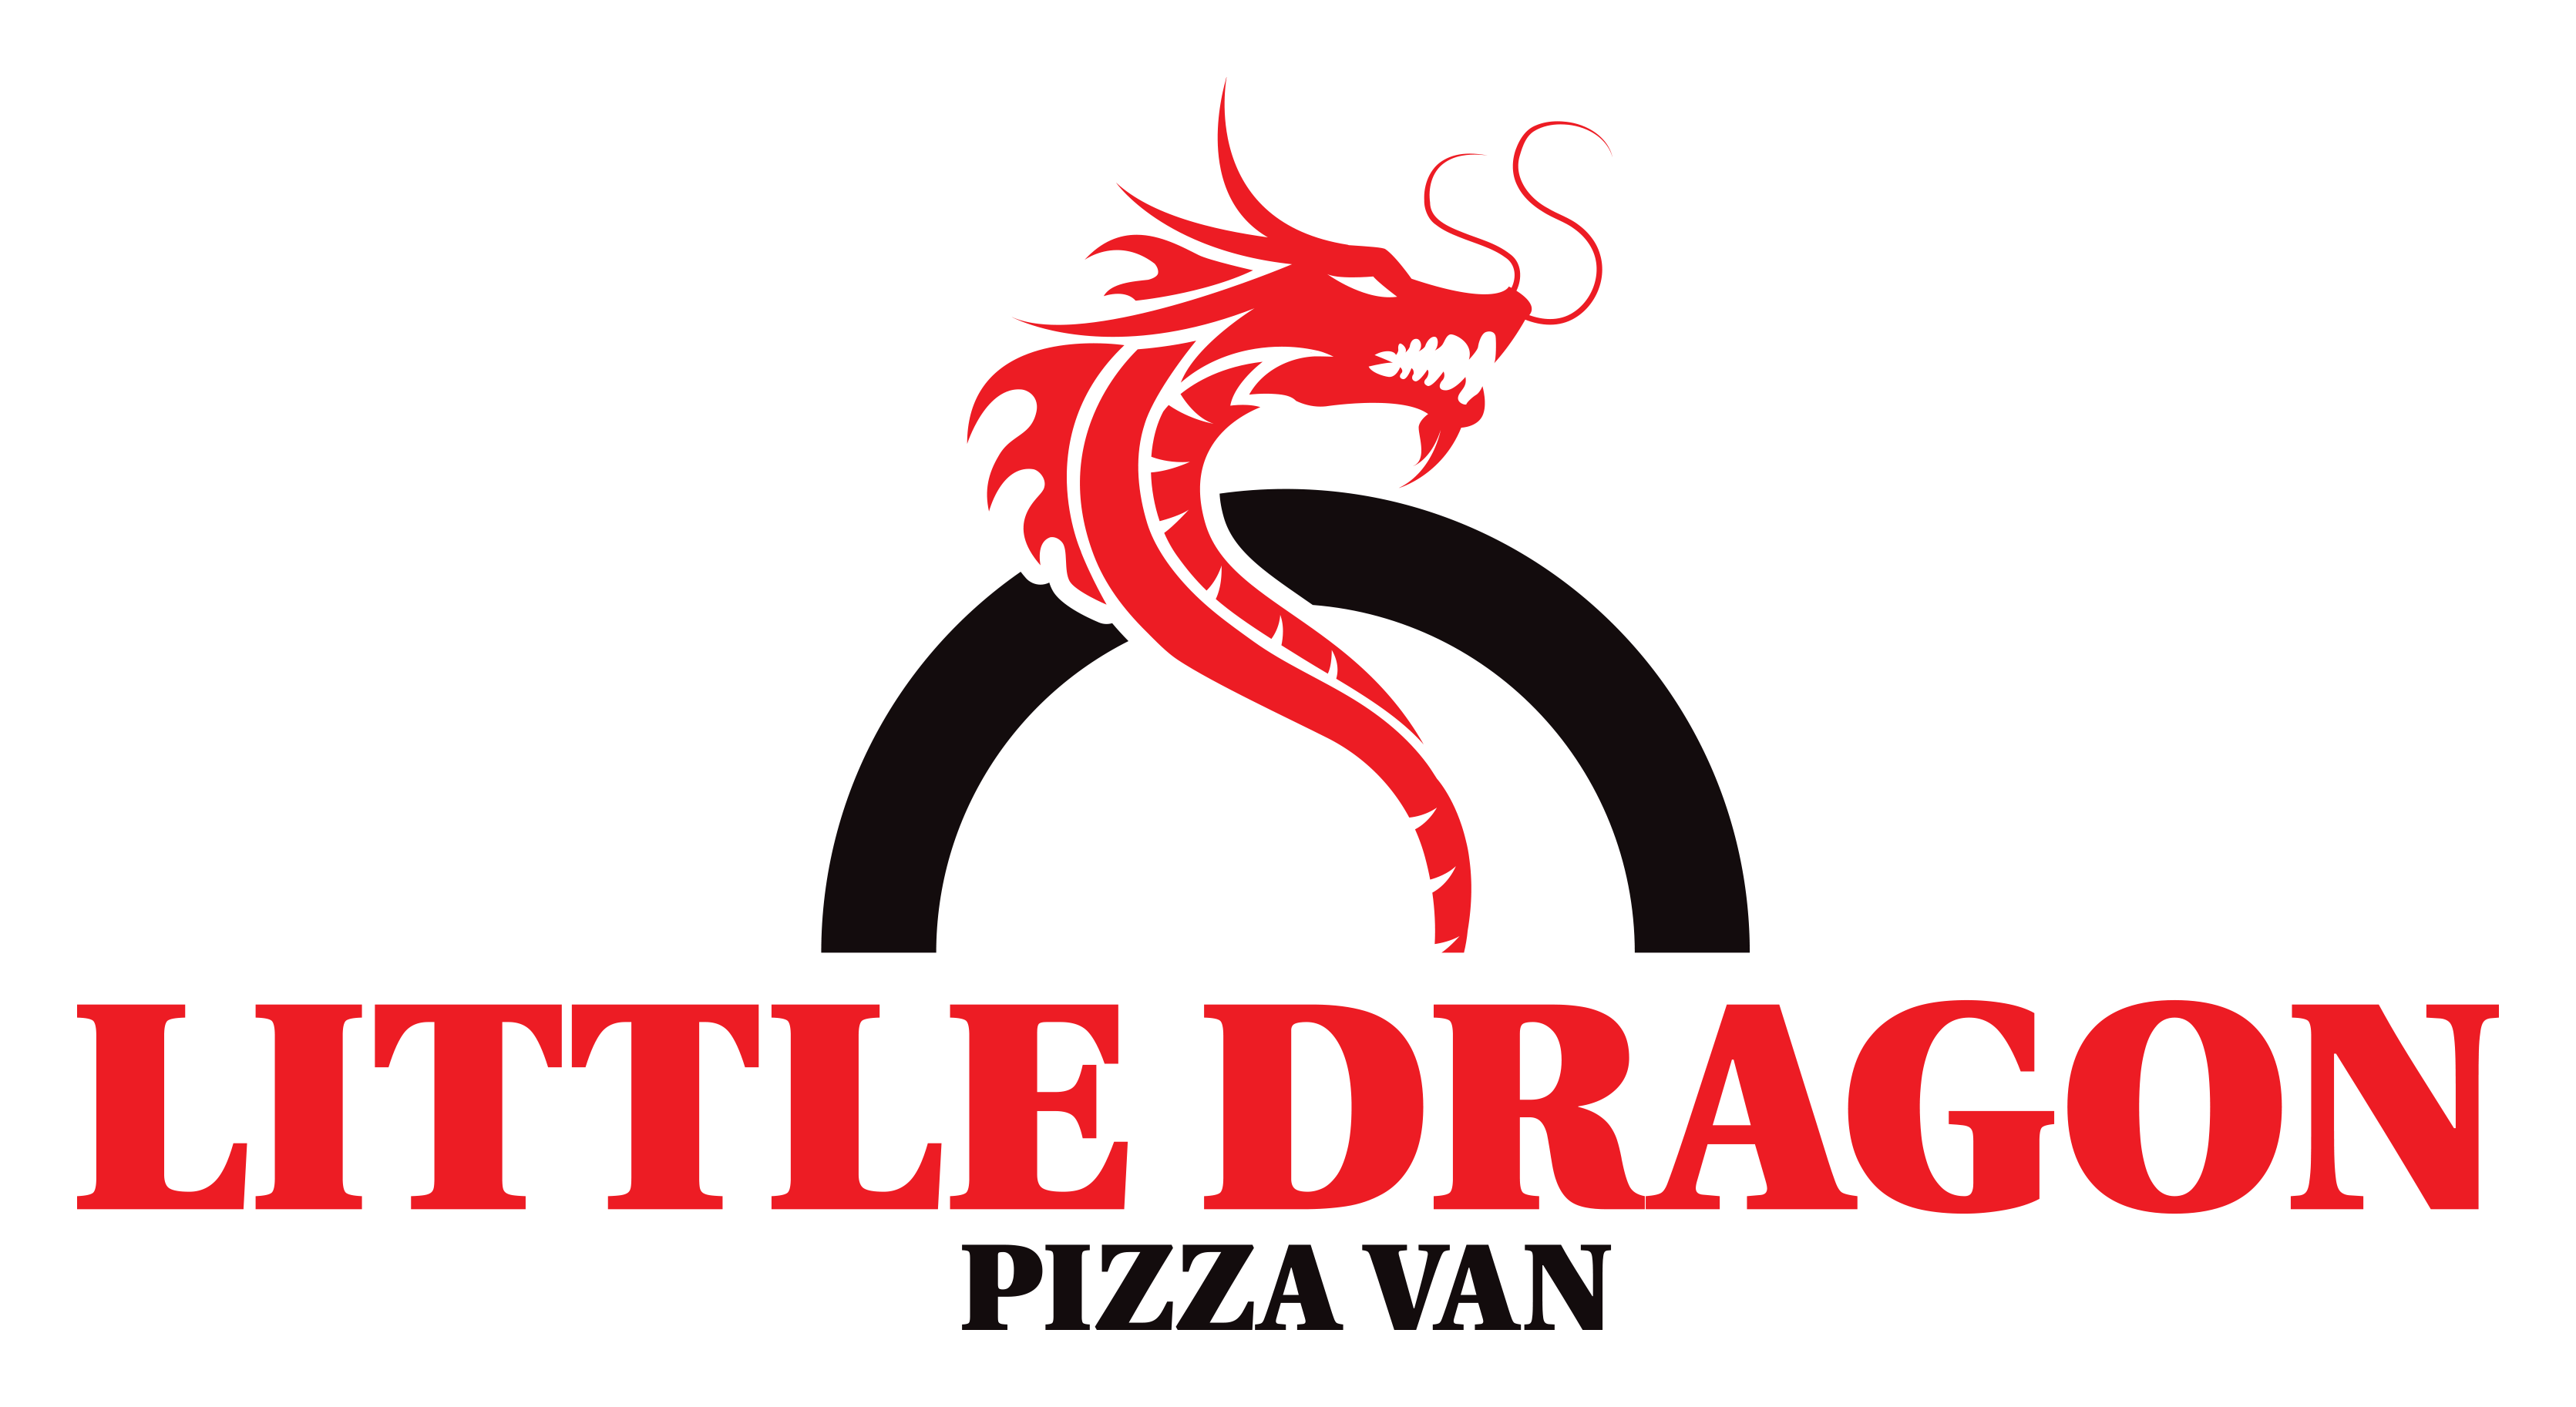 Little Dragon Pizza Van